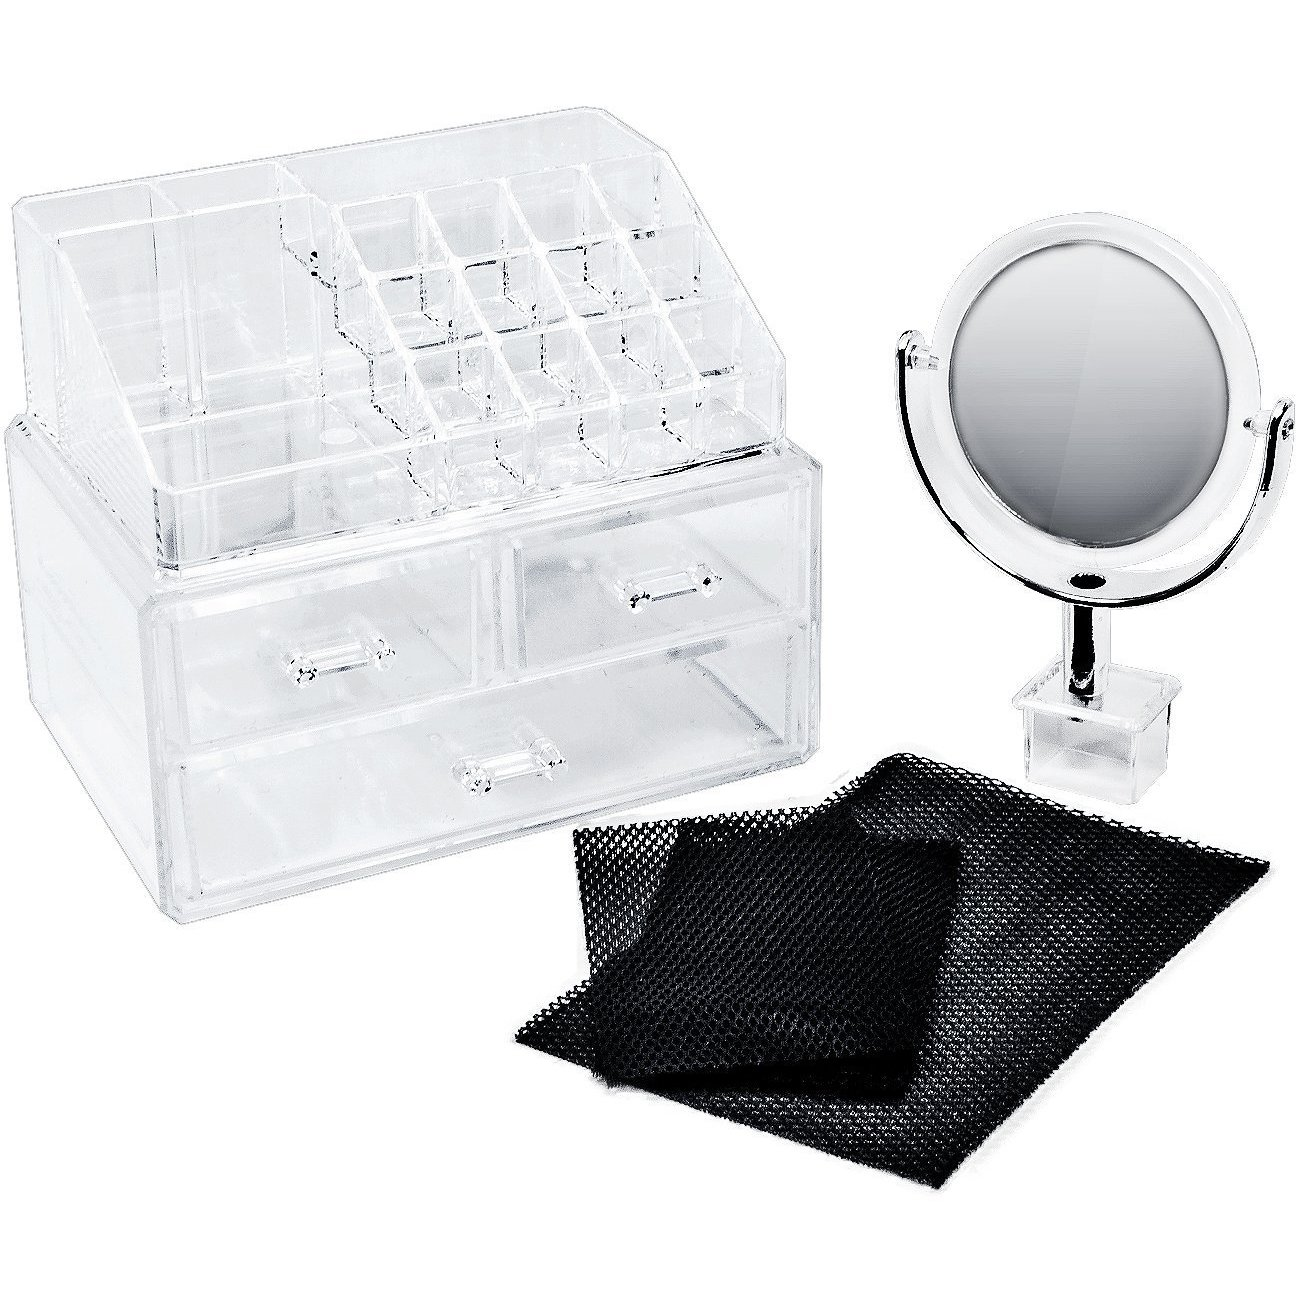 Sorbus Acrylic Cosmetic Makeup and Jewelry Storage Case Display with Removable Magnifying Mirror, Spacious Design